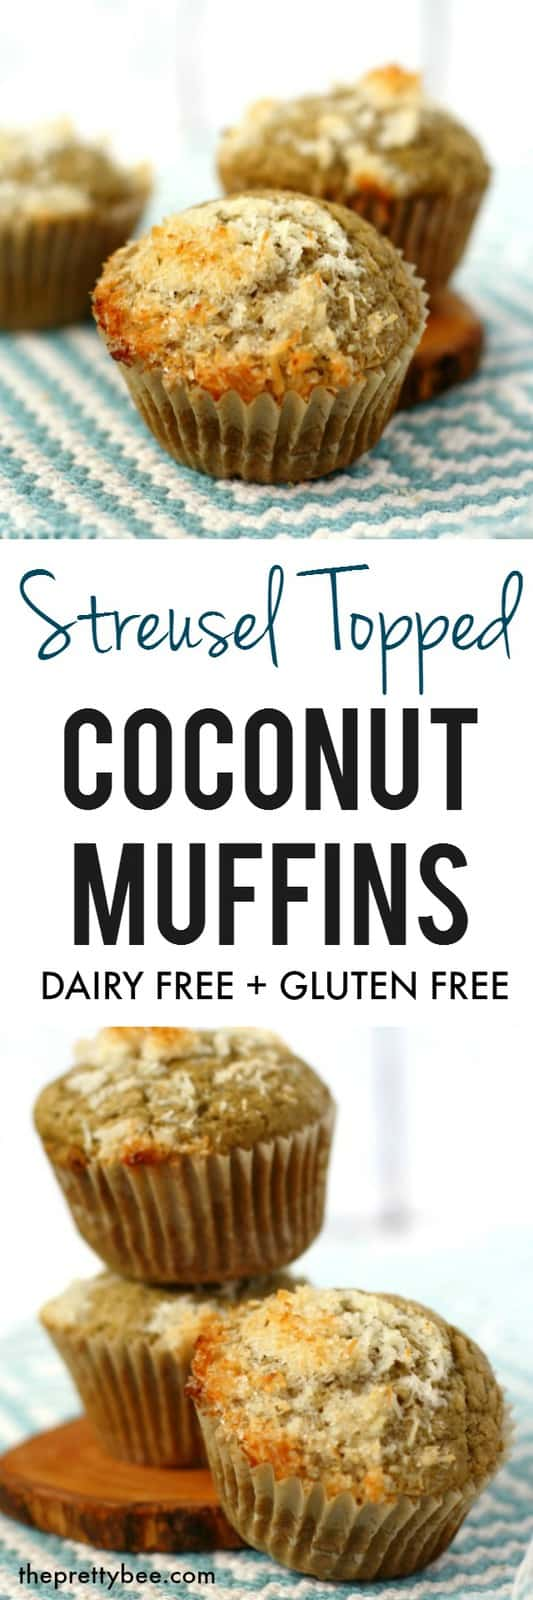 Gluten free dairy free muffins are topped with a crunchy streusel topping